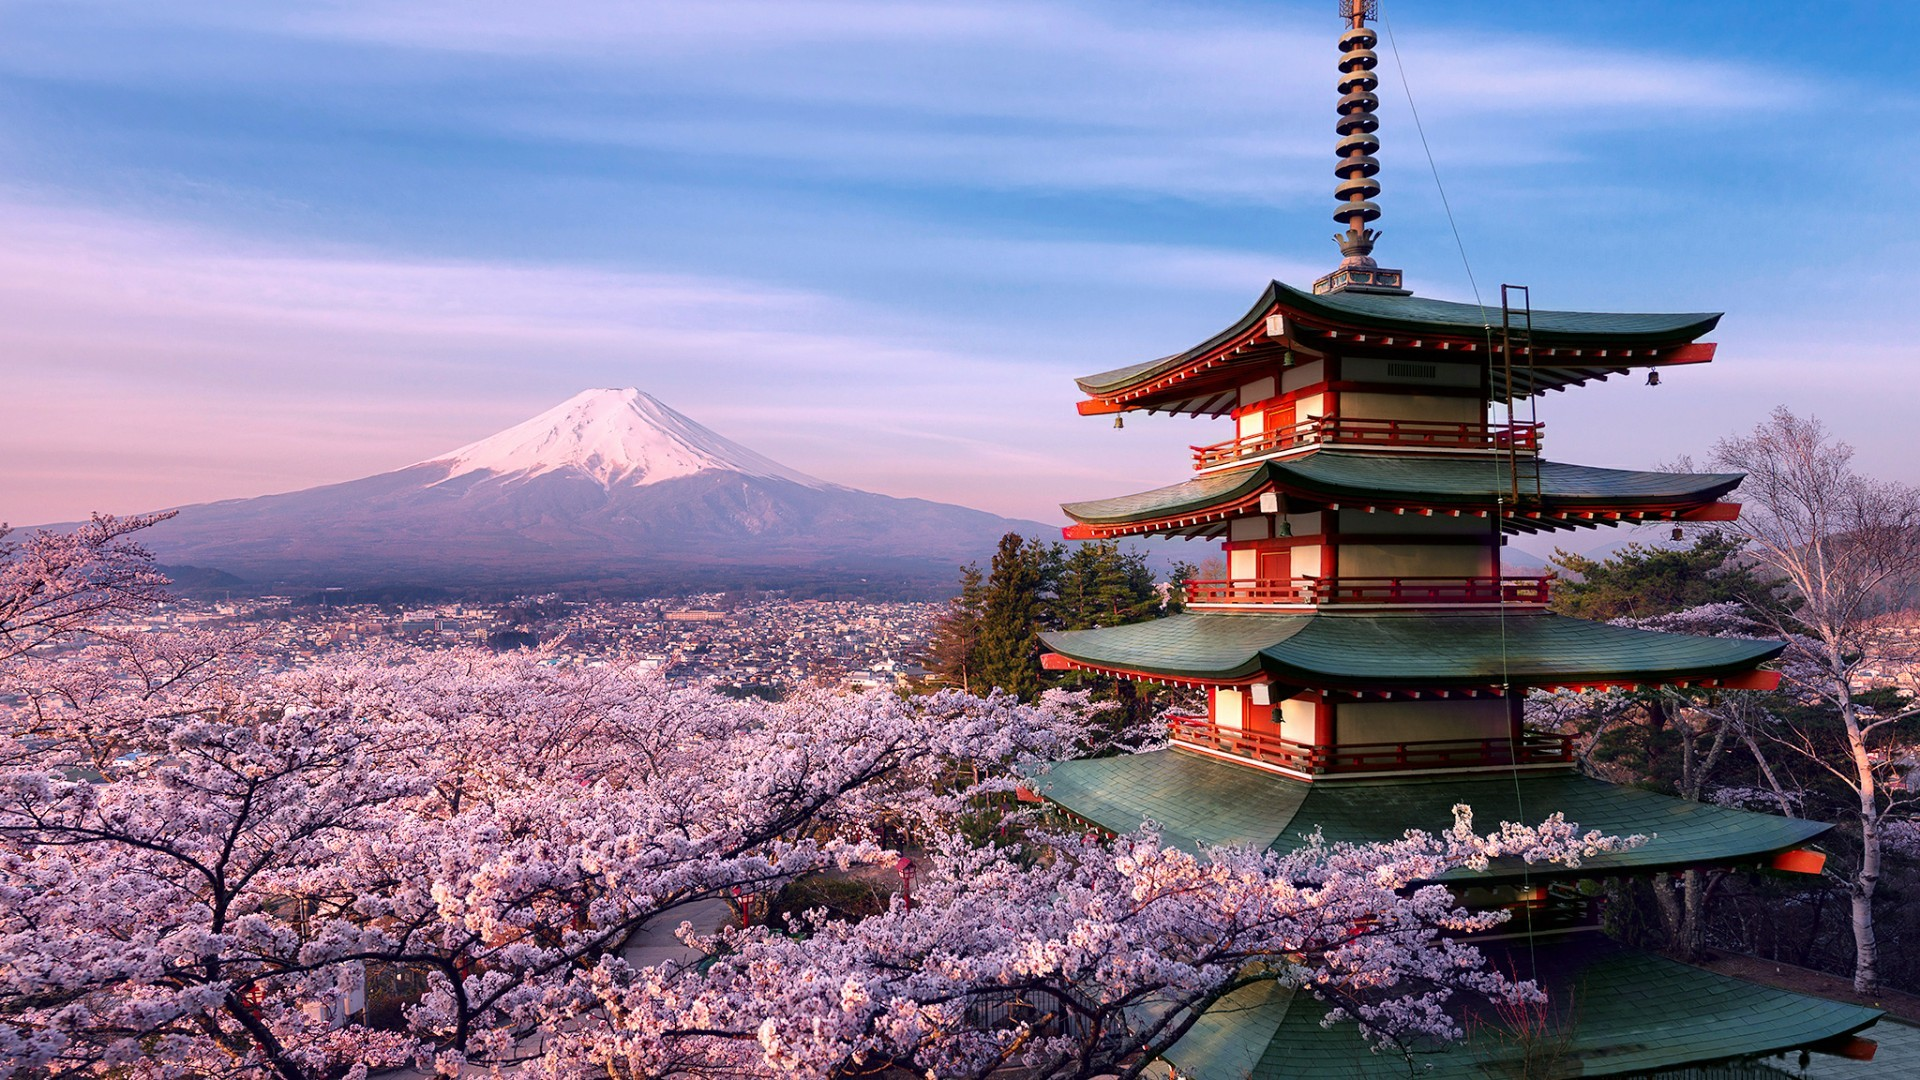 Res: 1920x1080, Mount Fuji Volcano And Chureito Pagoda Wallpaper   Wallpaper Studio 10    Tens of thousands HD and UltraHD wallpapers for Android, Windows and Xbox